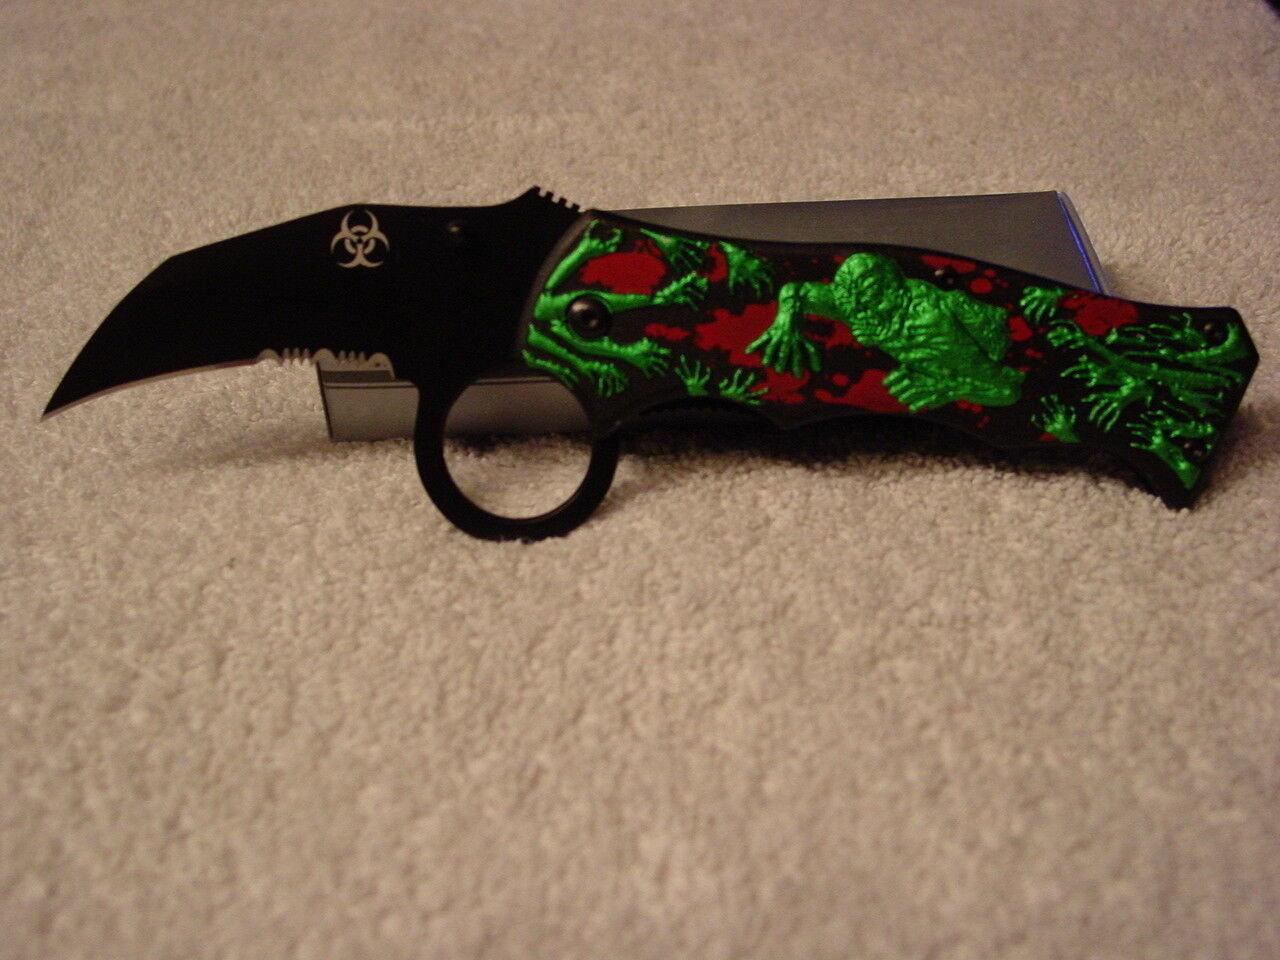 ZOMBIE SPRING ASSISTED POCKET KNIFE BLADE WITH BELT CLIP GREEN RED BLACK HANDLE